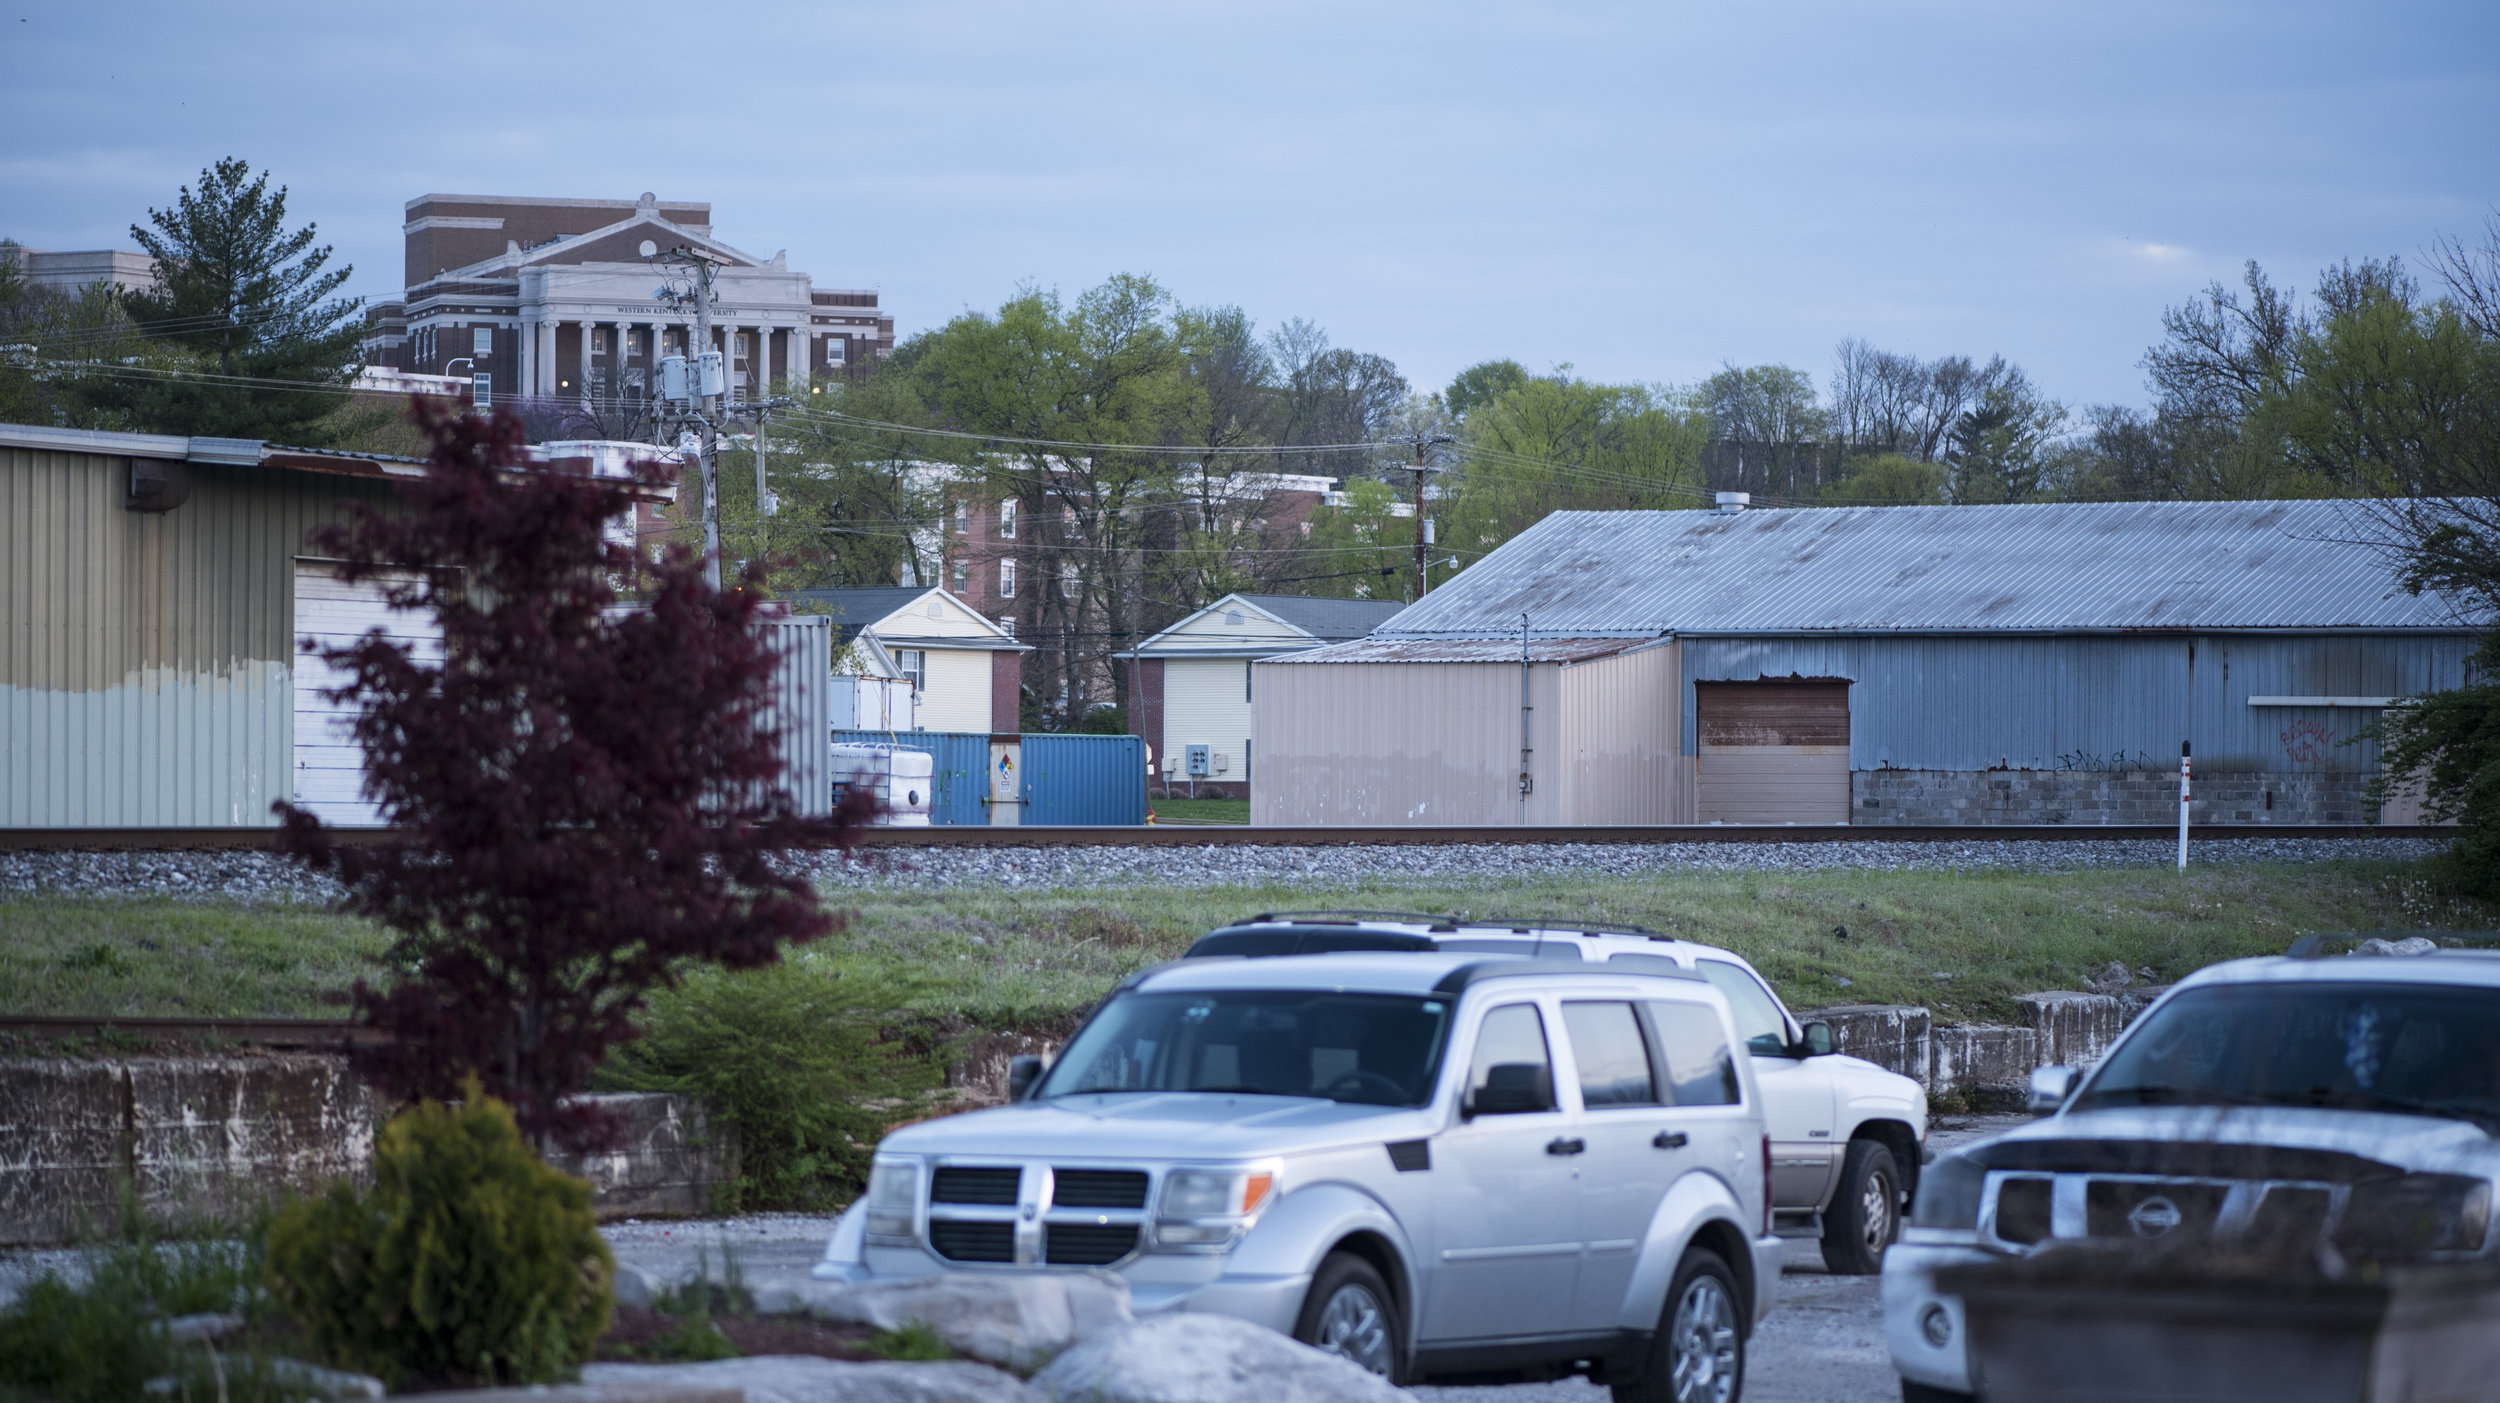 Van Meter Hall on the Campus of Western Kentucky University can be seen from the parking lot across the street from the Light of the World church.